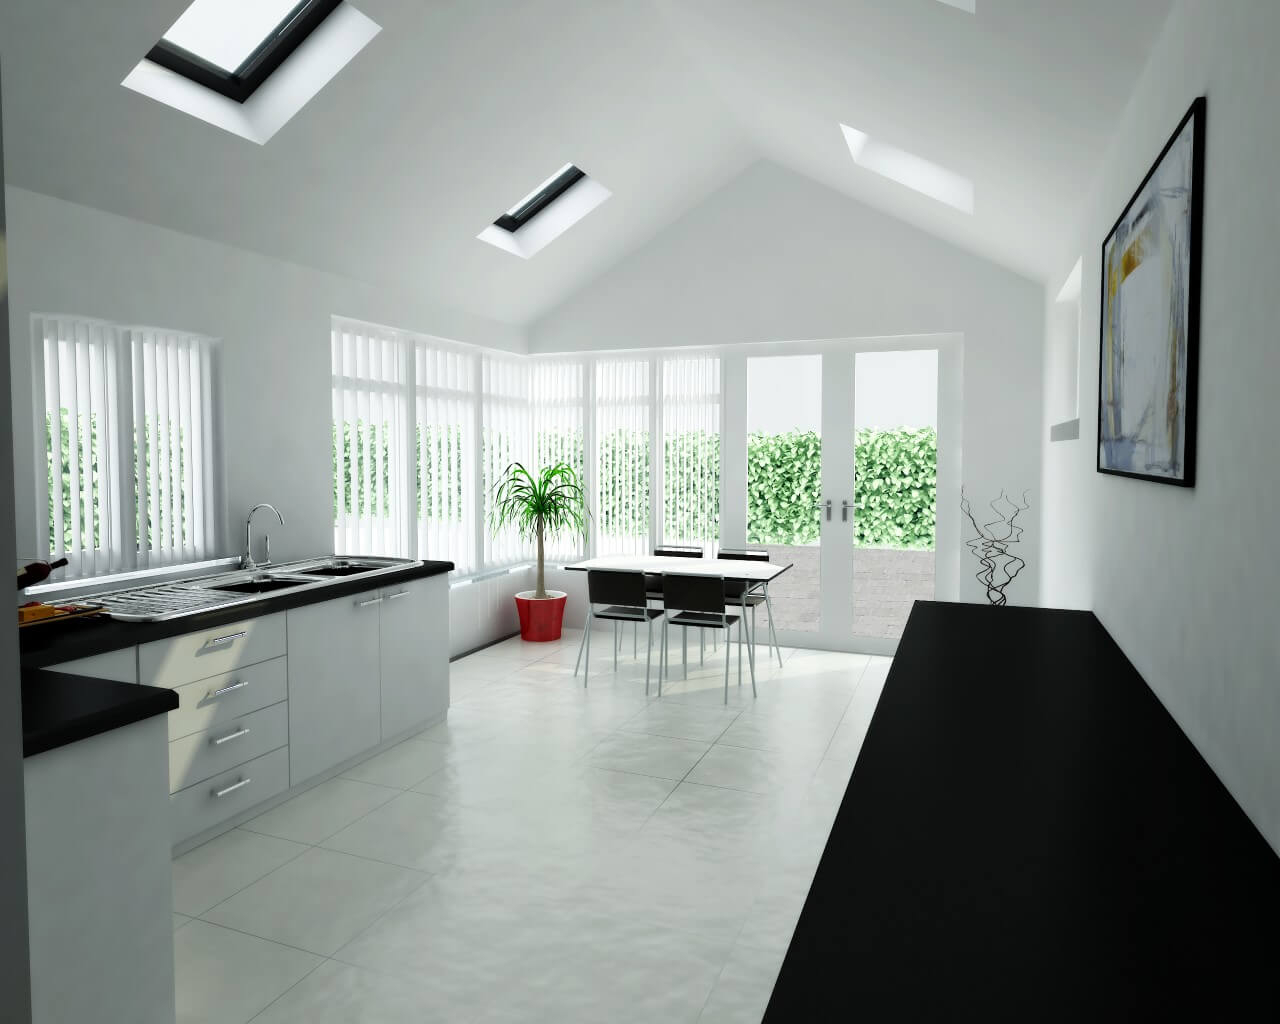 Rendering of the kitchen of a house.